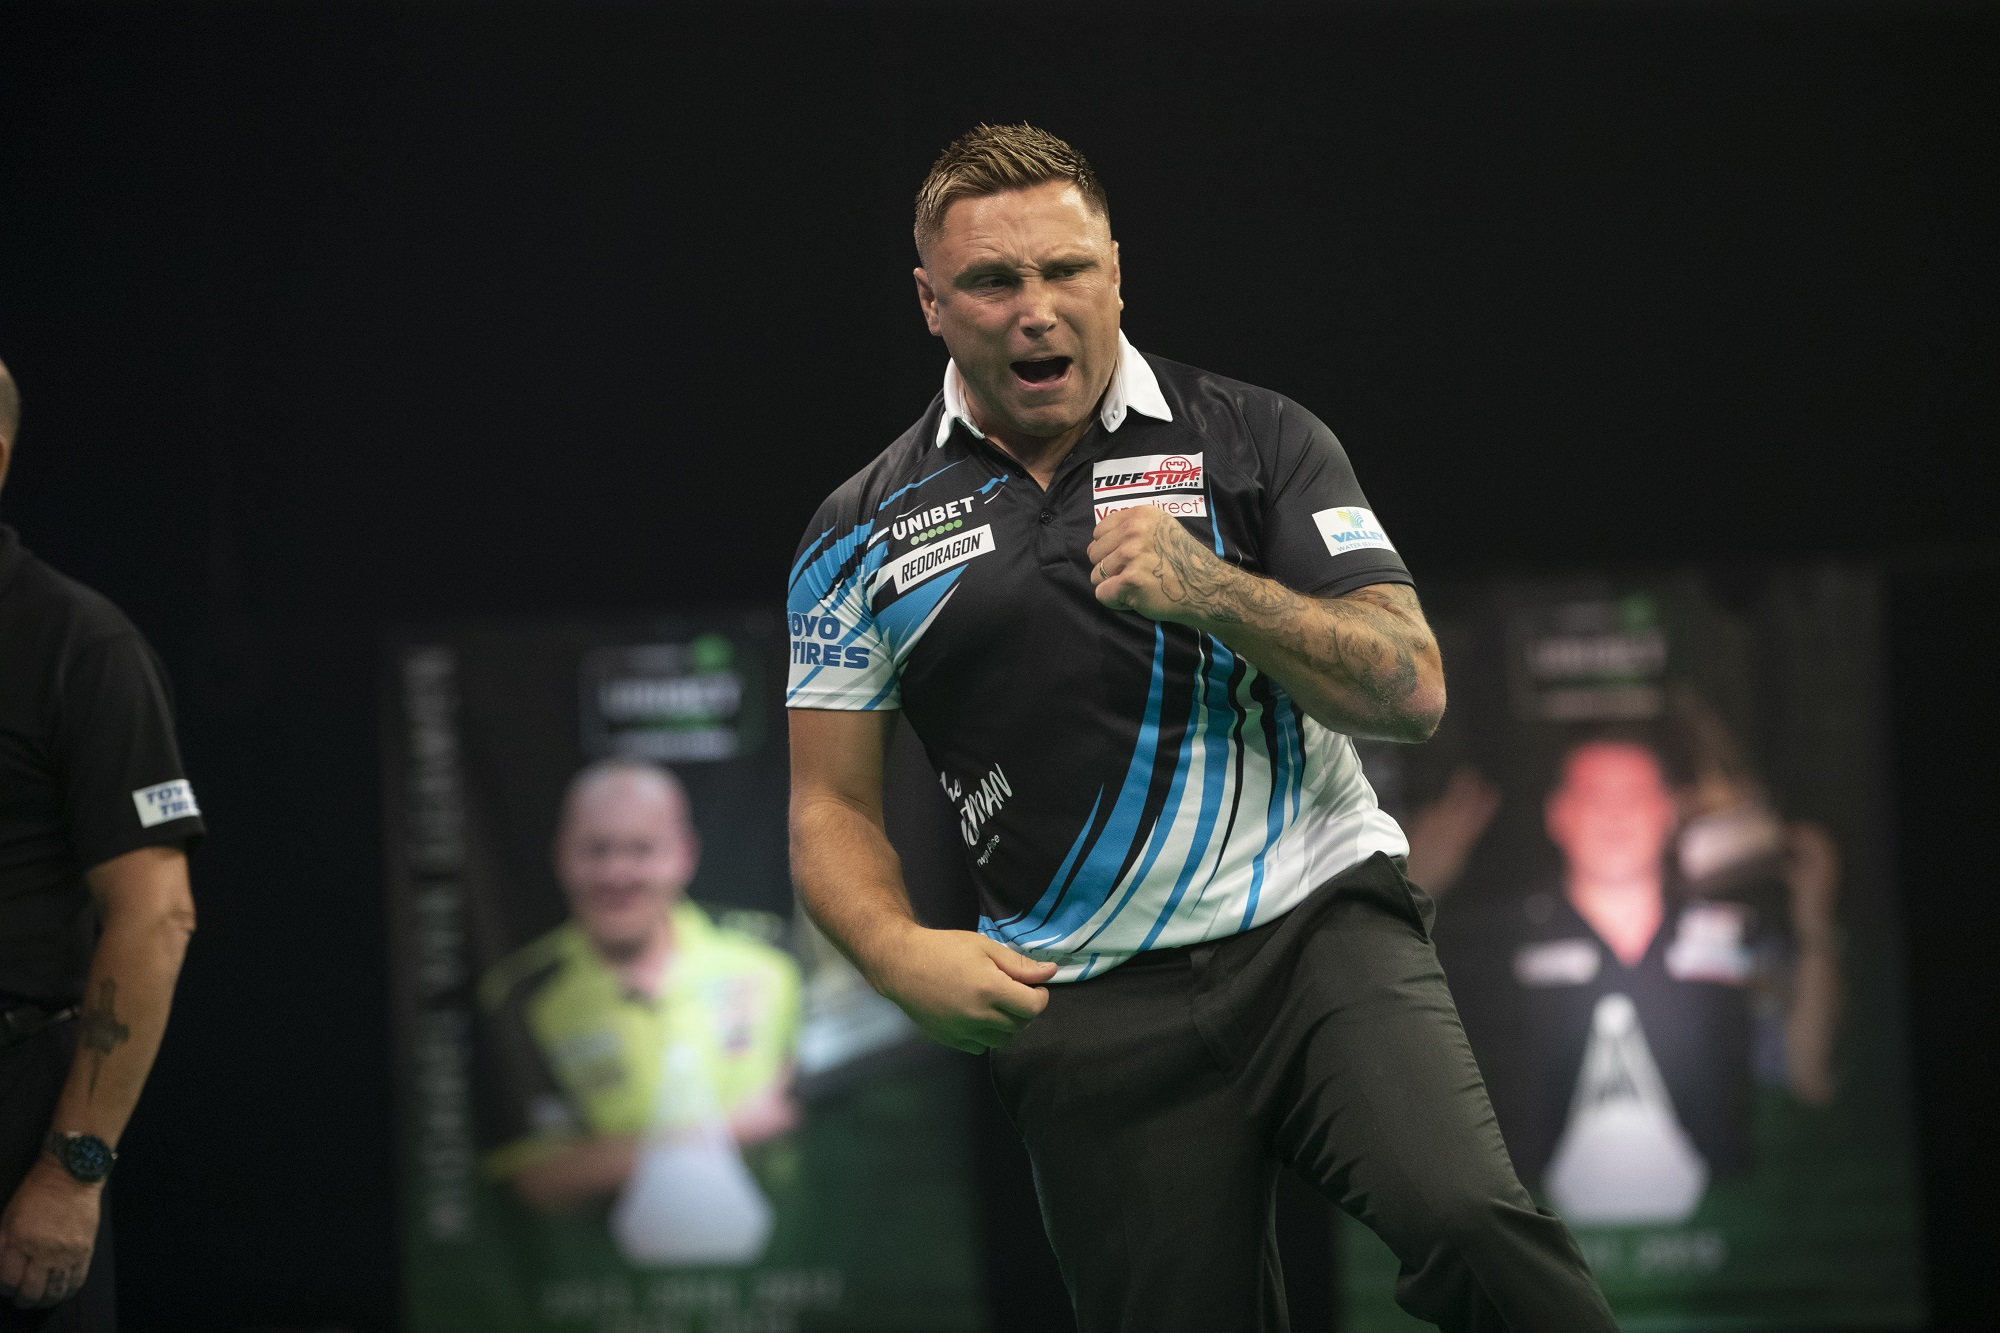 """Premier League Darts 2021 Preview: """"It's time for Gerwyn Price to prove himself in this competition"""""""